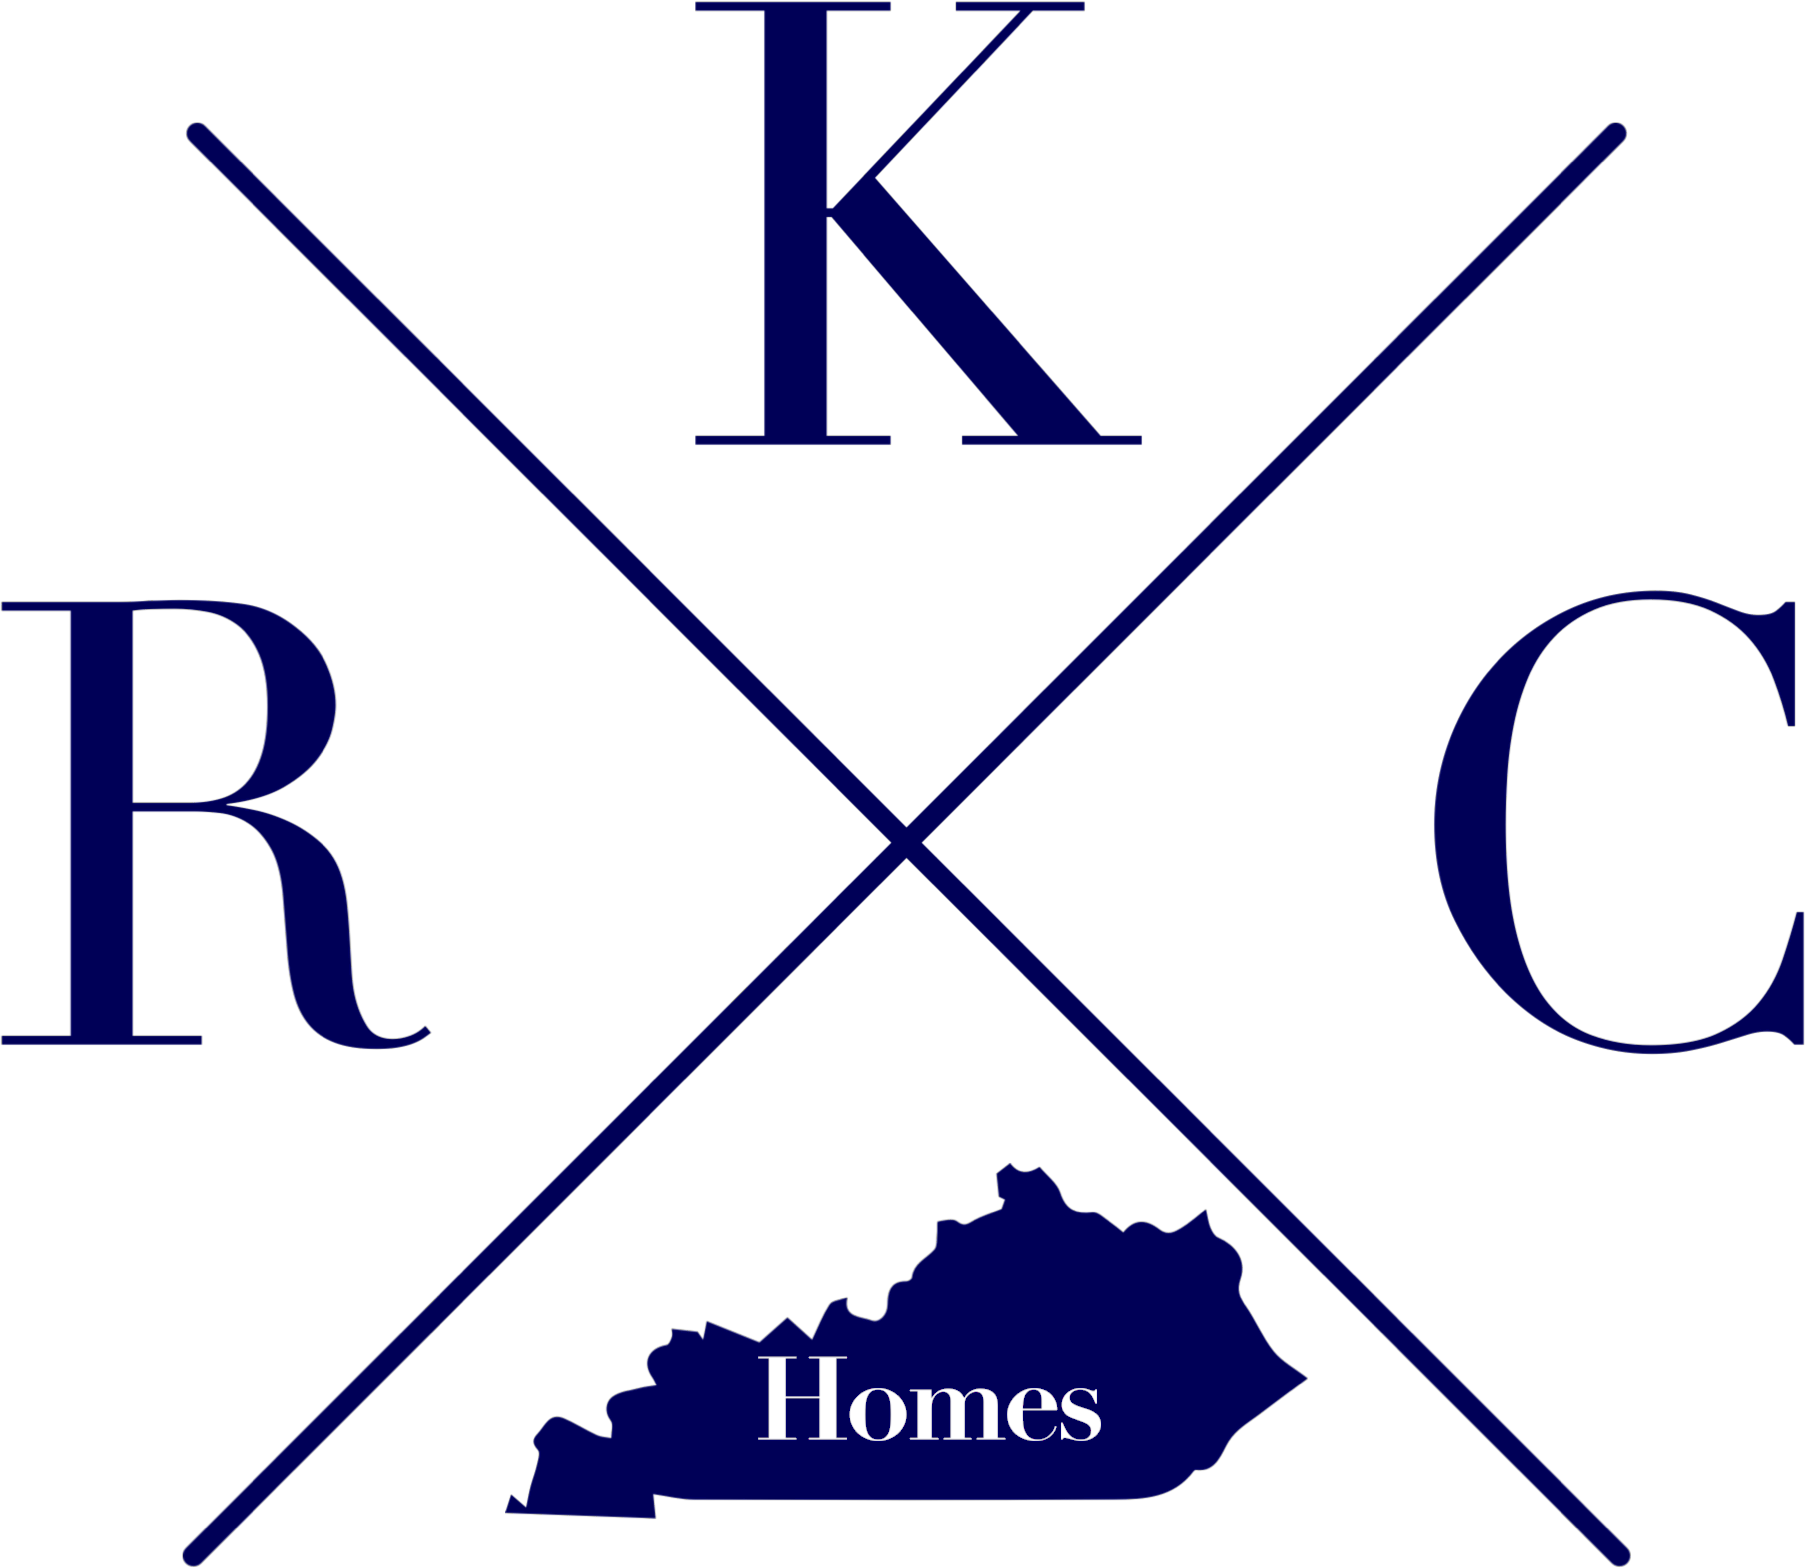 For More Information... - Fill out the contact form below to contact KRC Homes about starting your own Custom Home